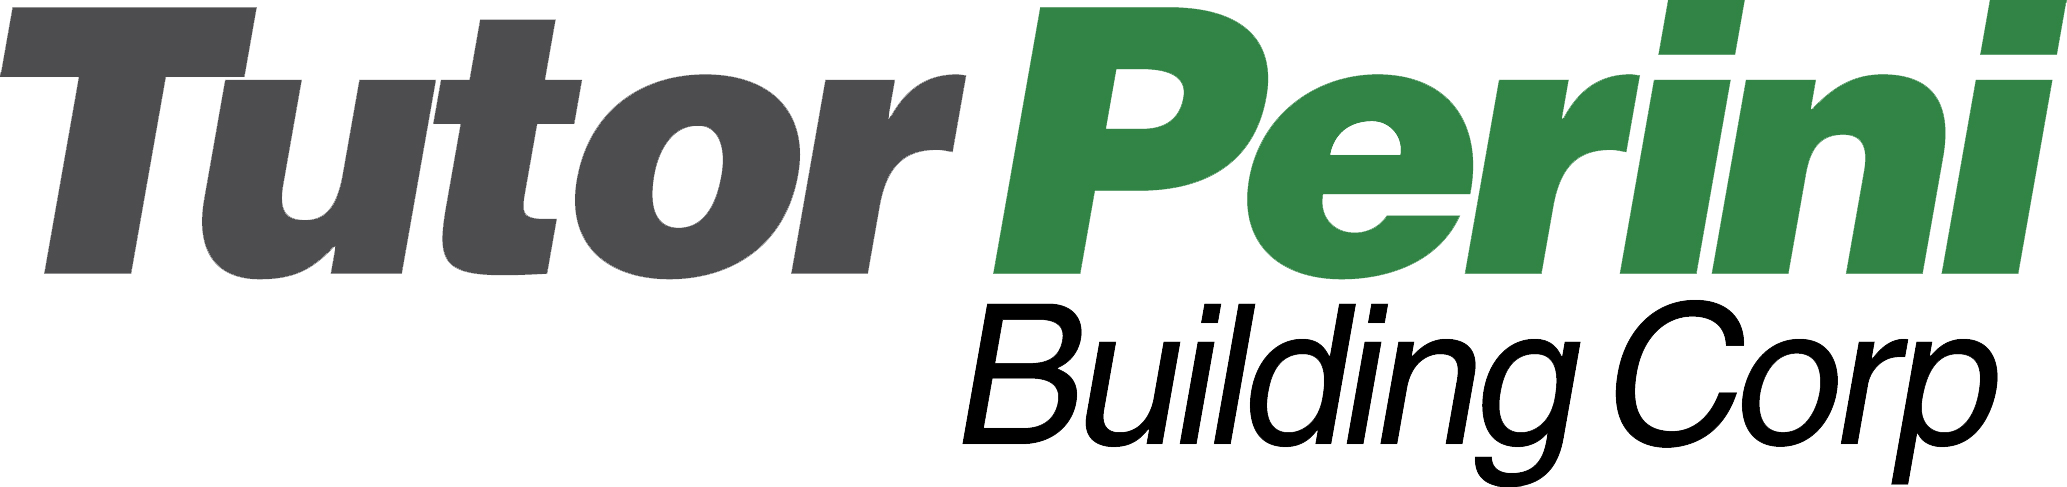 Tutor Perini Building Corporation